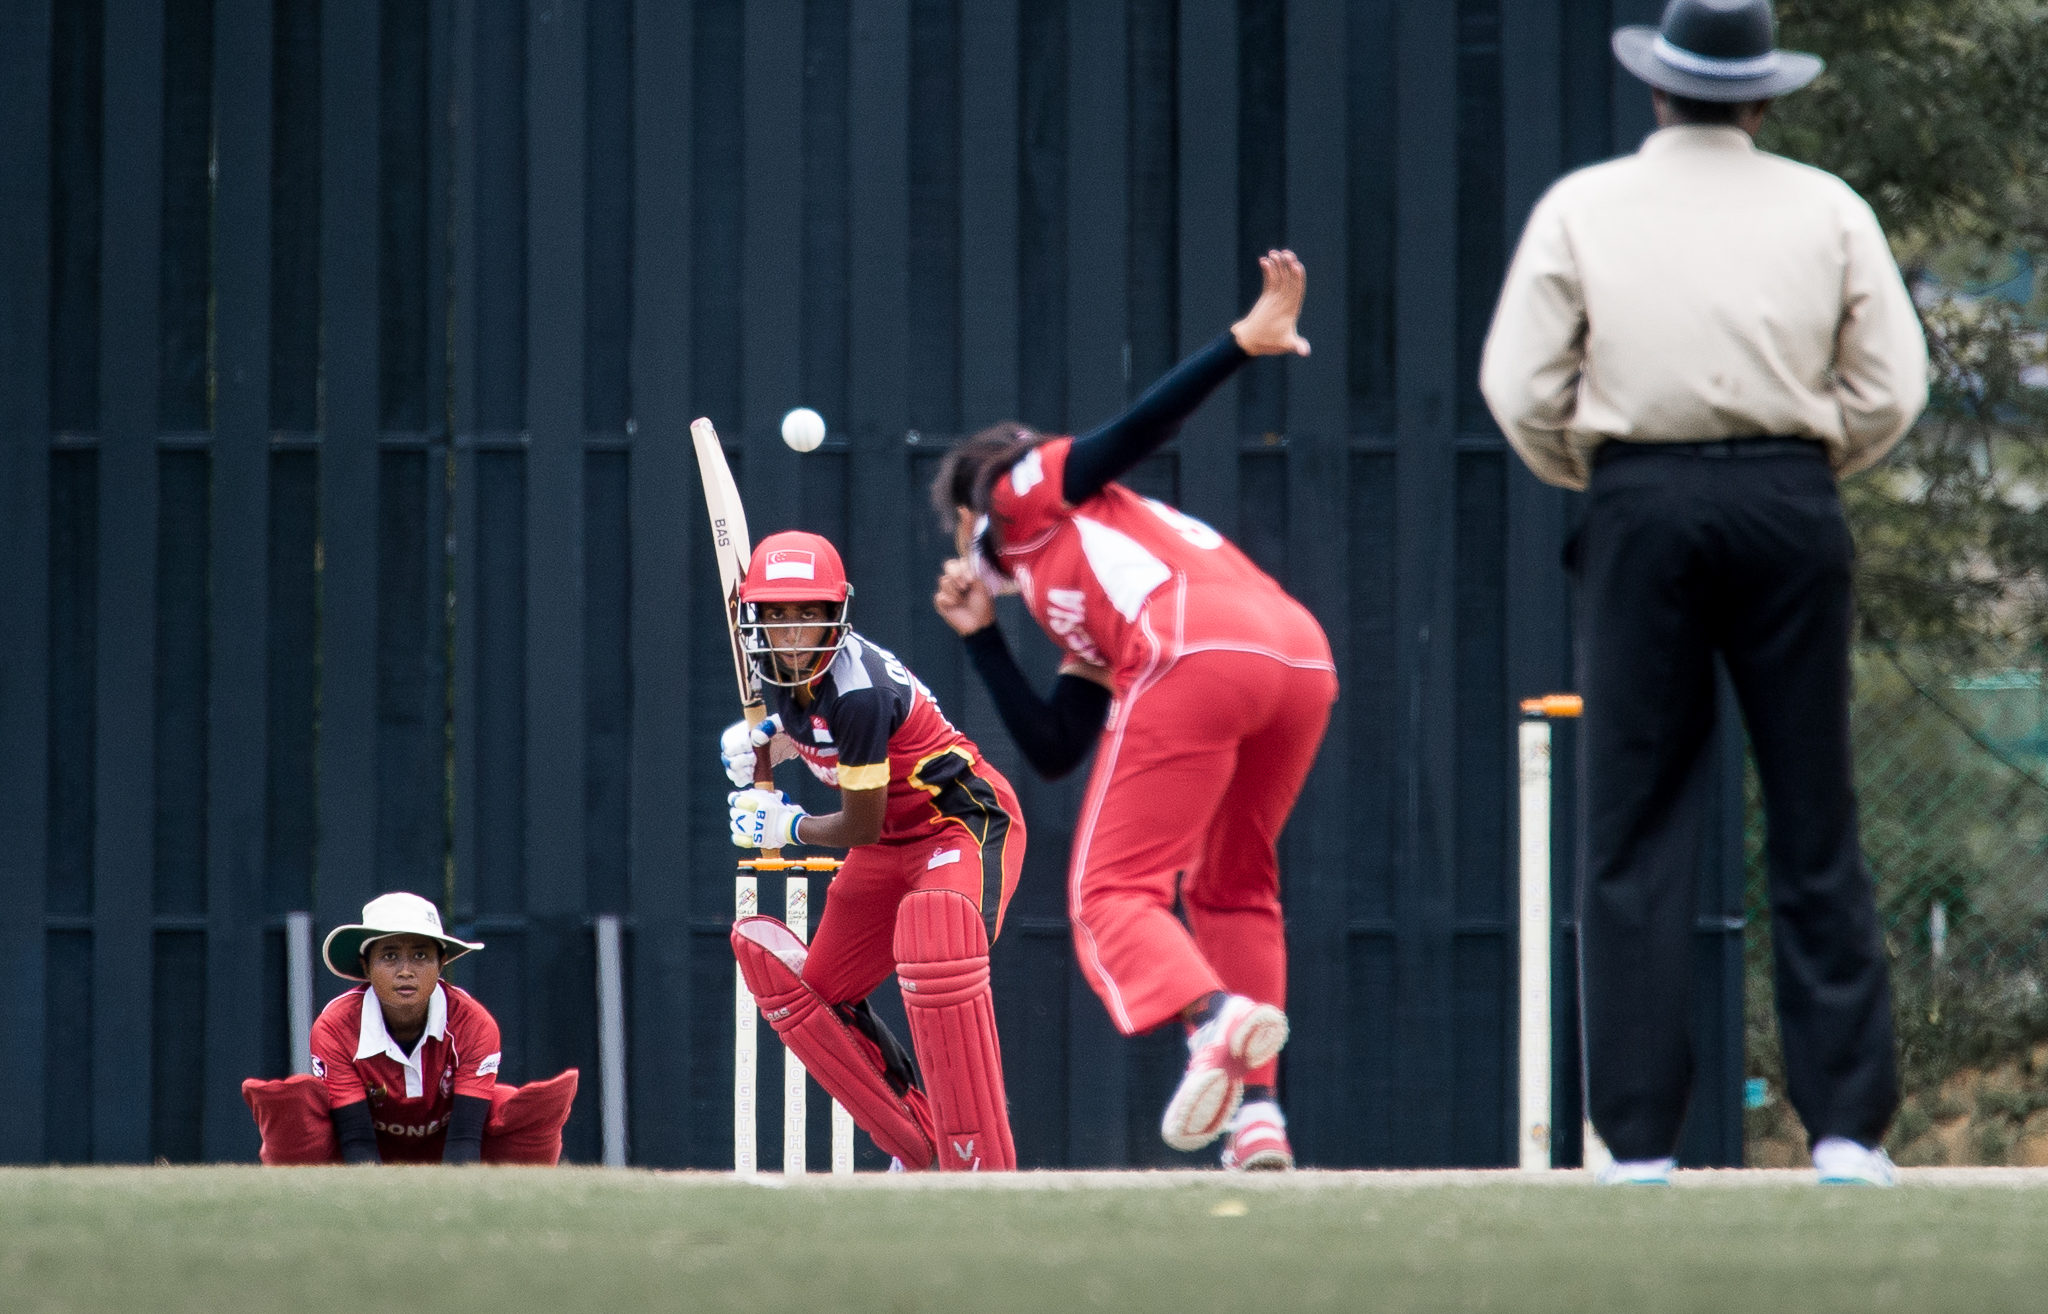 A Singaporean cricket players bats during the SEA Games at the Kinrara Oval.